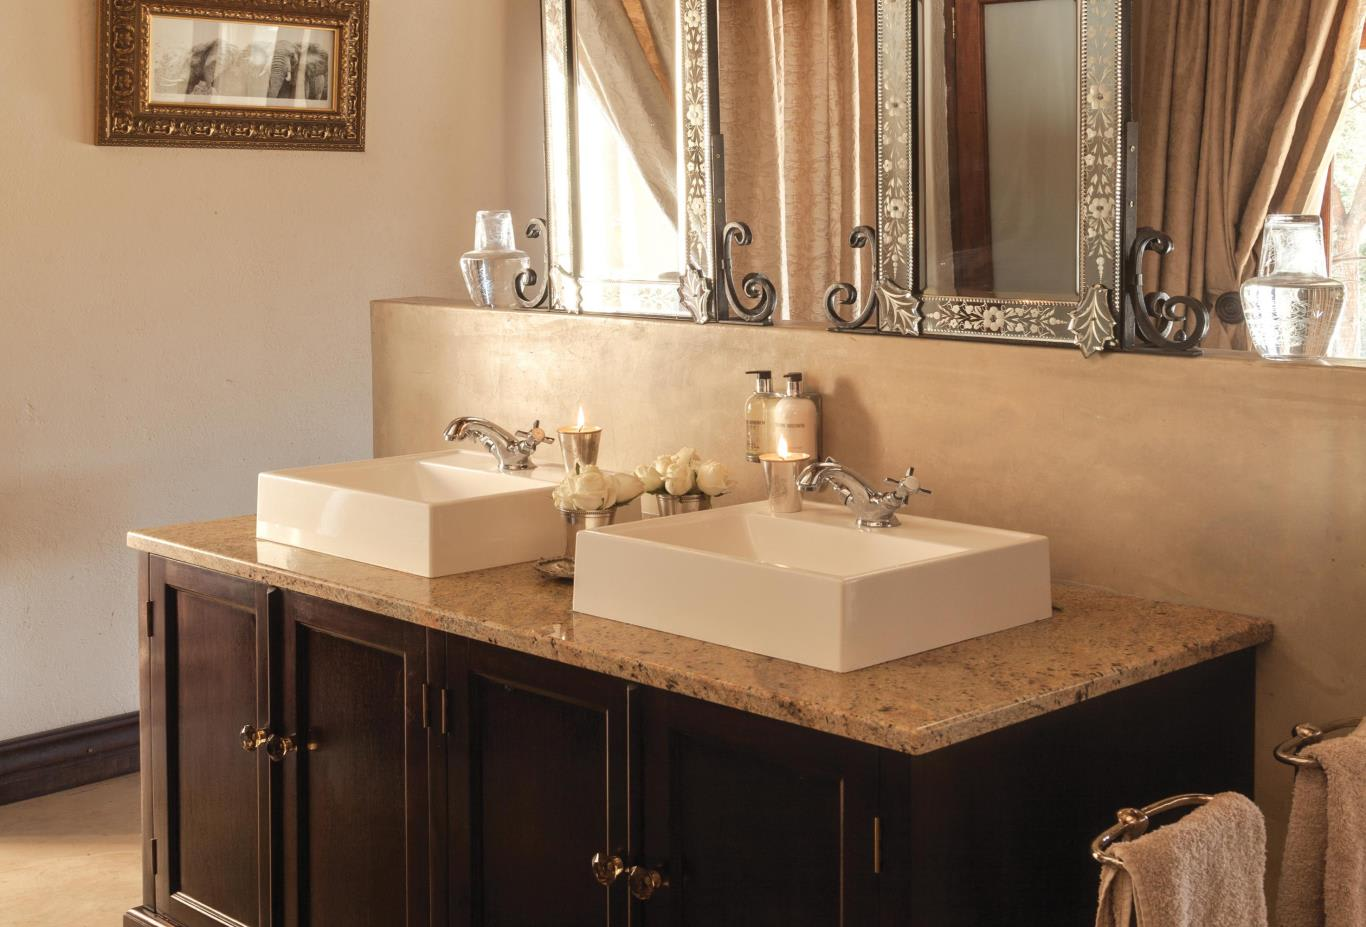 Honeymoon-suite-bathroom-vanity